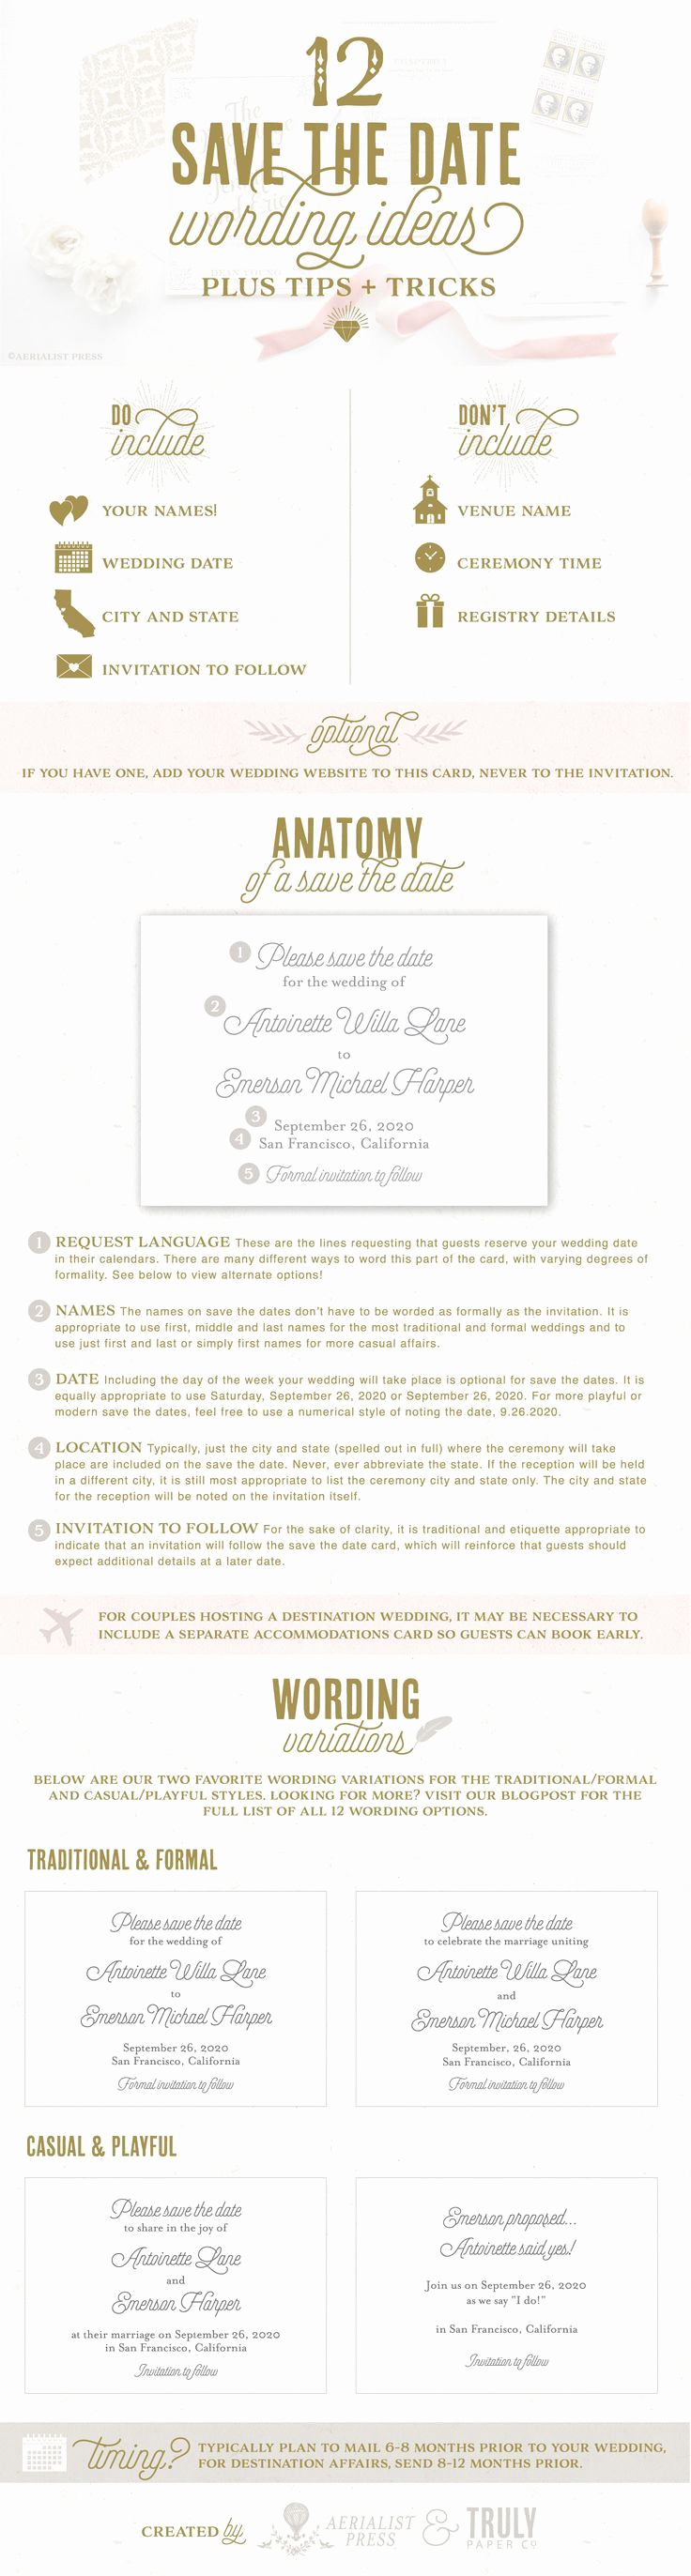 Save the Date Invitation Ideas Best Of 17 Best Ideas About Save the Date Wording On Pinterest